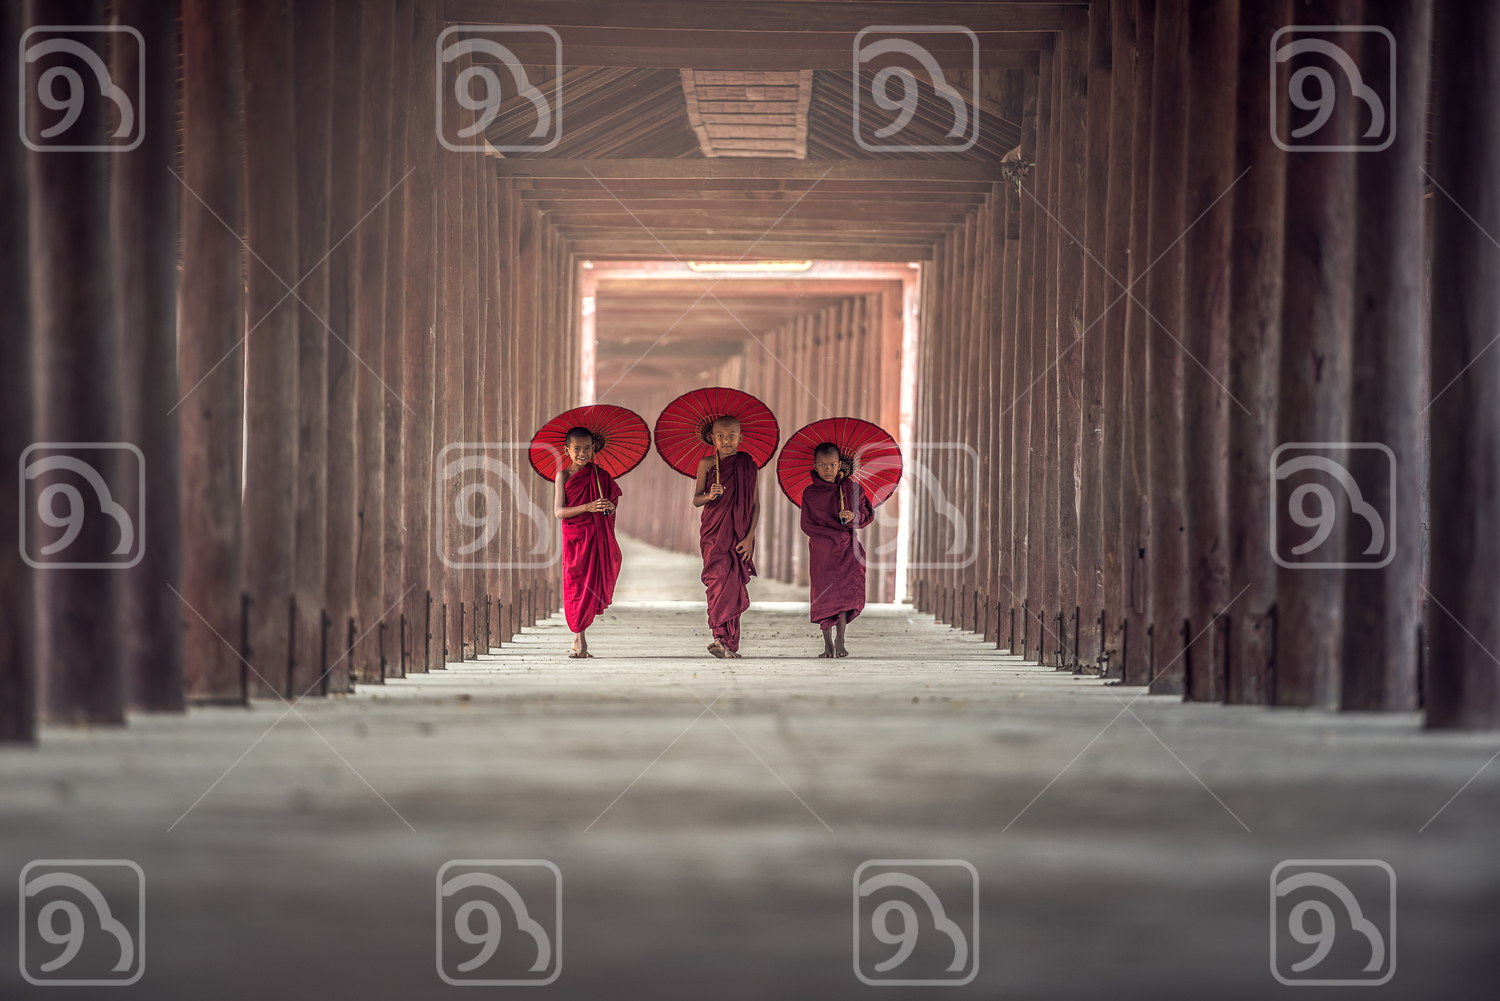 Buddhist novice walking in temple